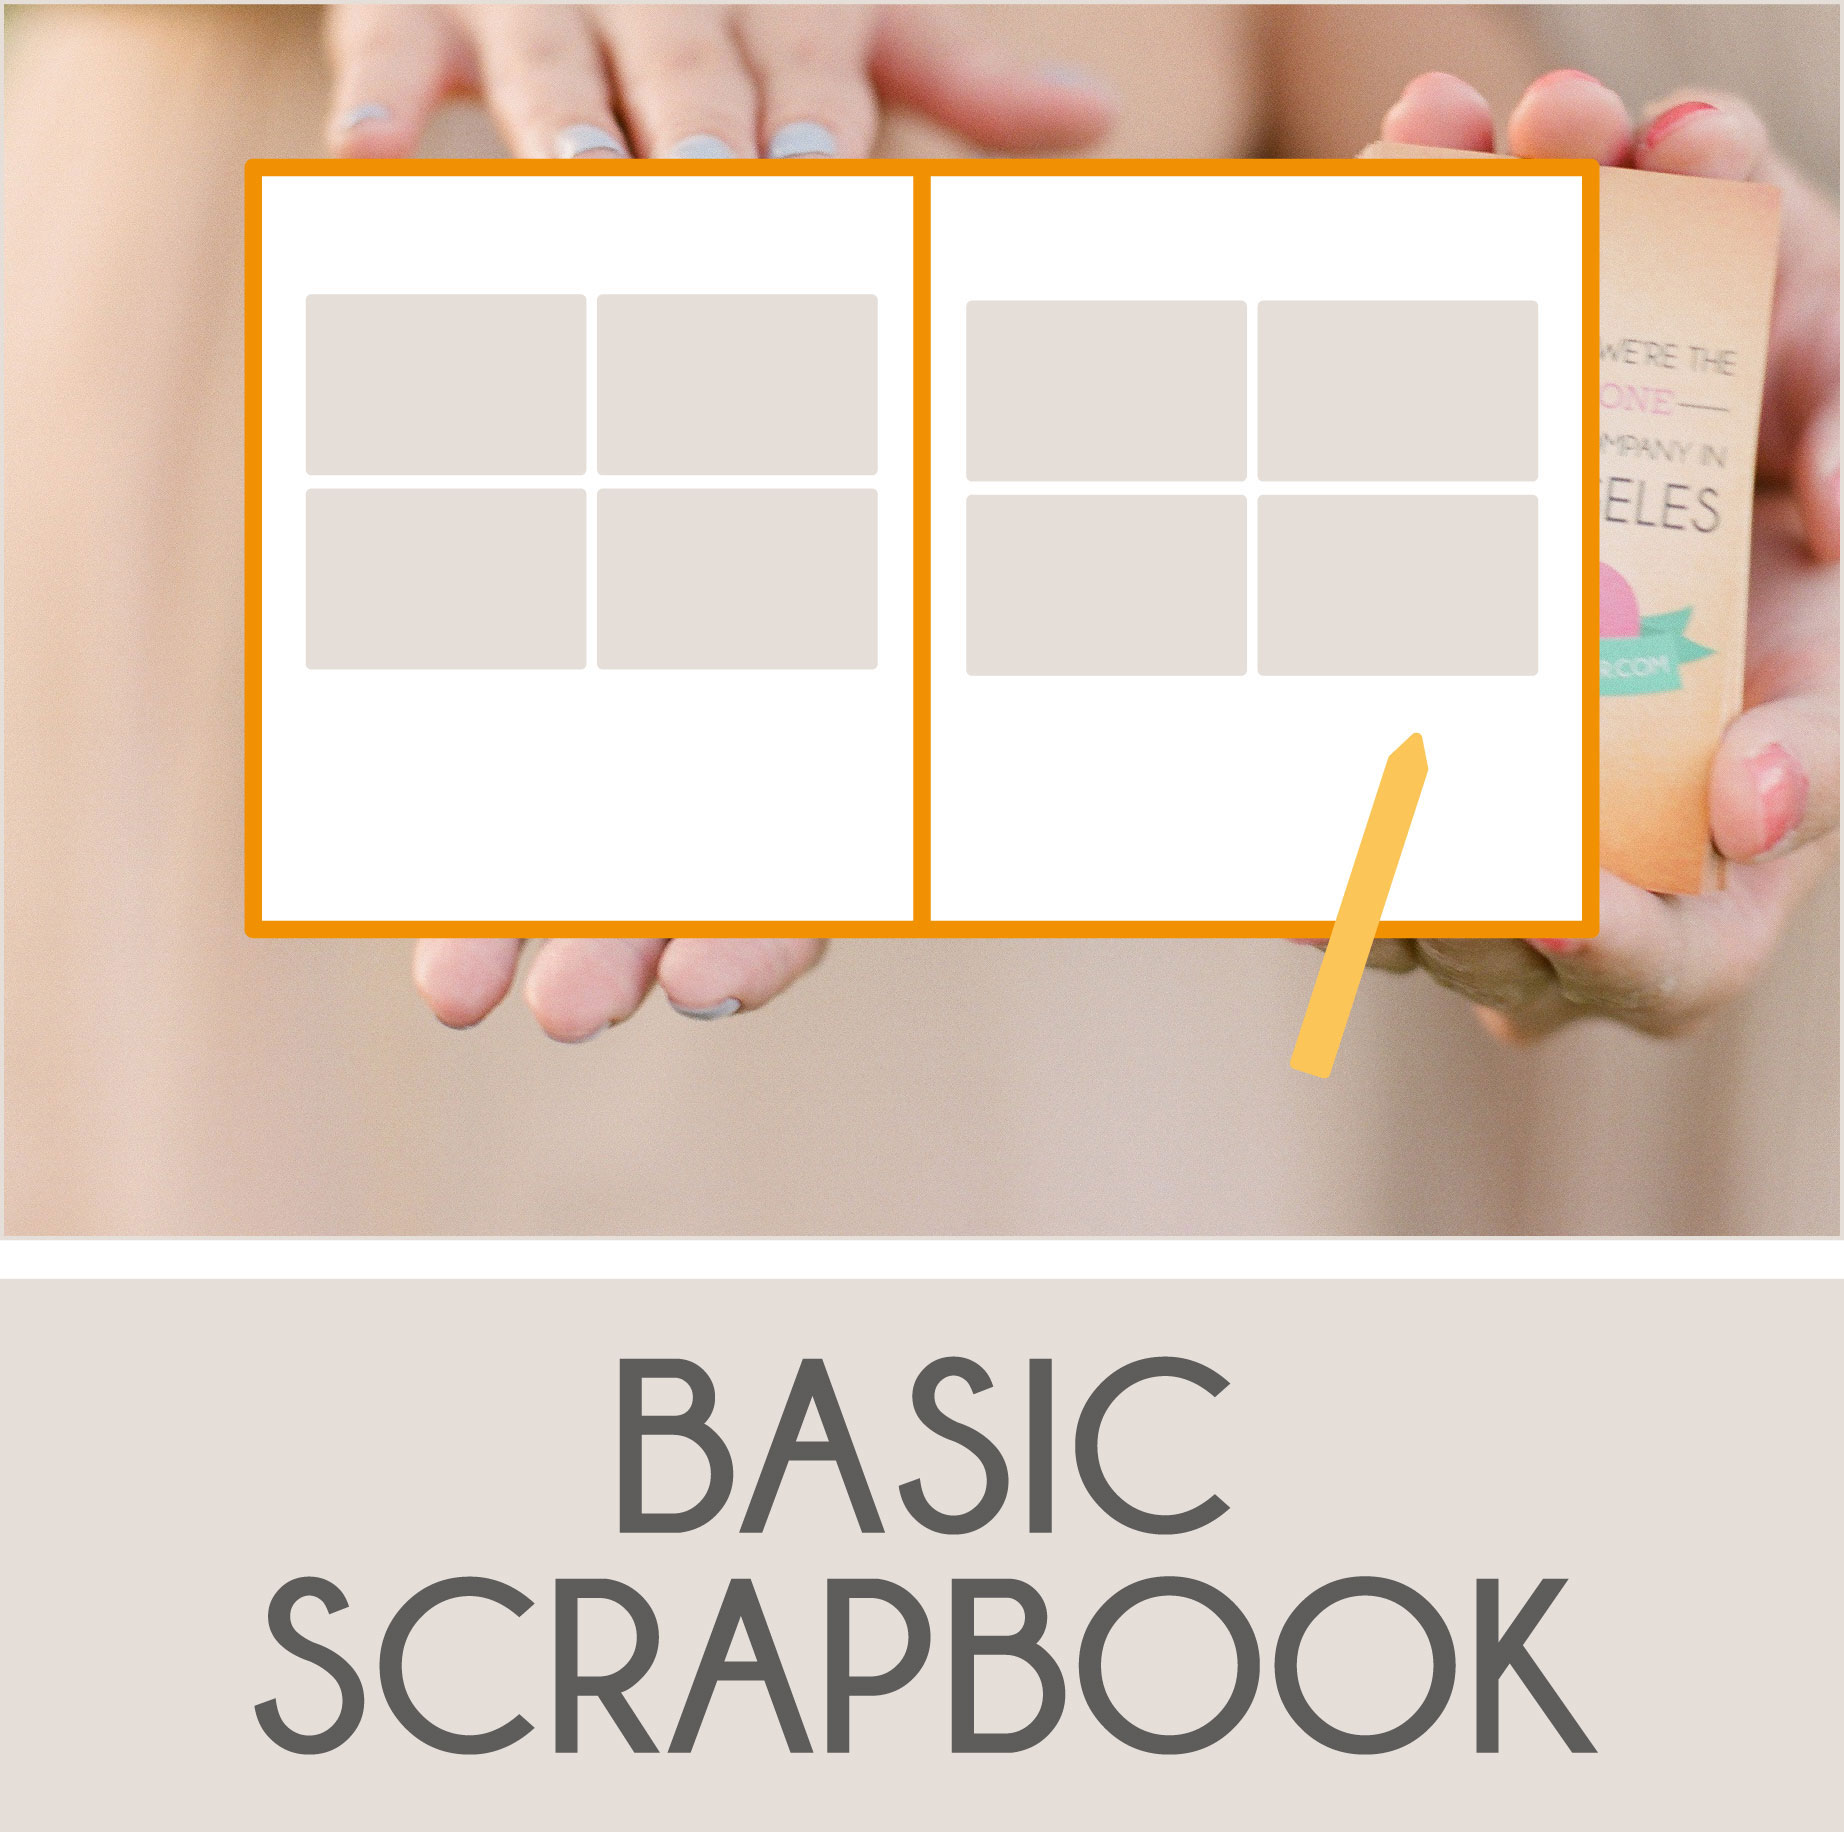 Blank Scrapbook Pages to Fill with Photo Prints